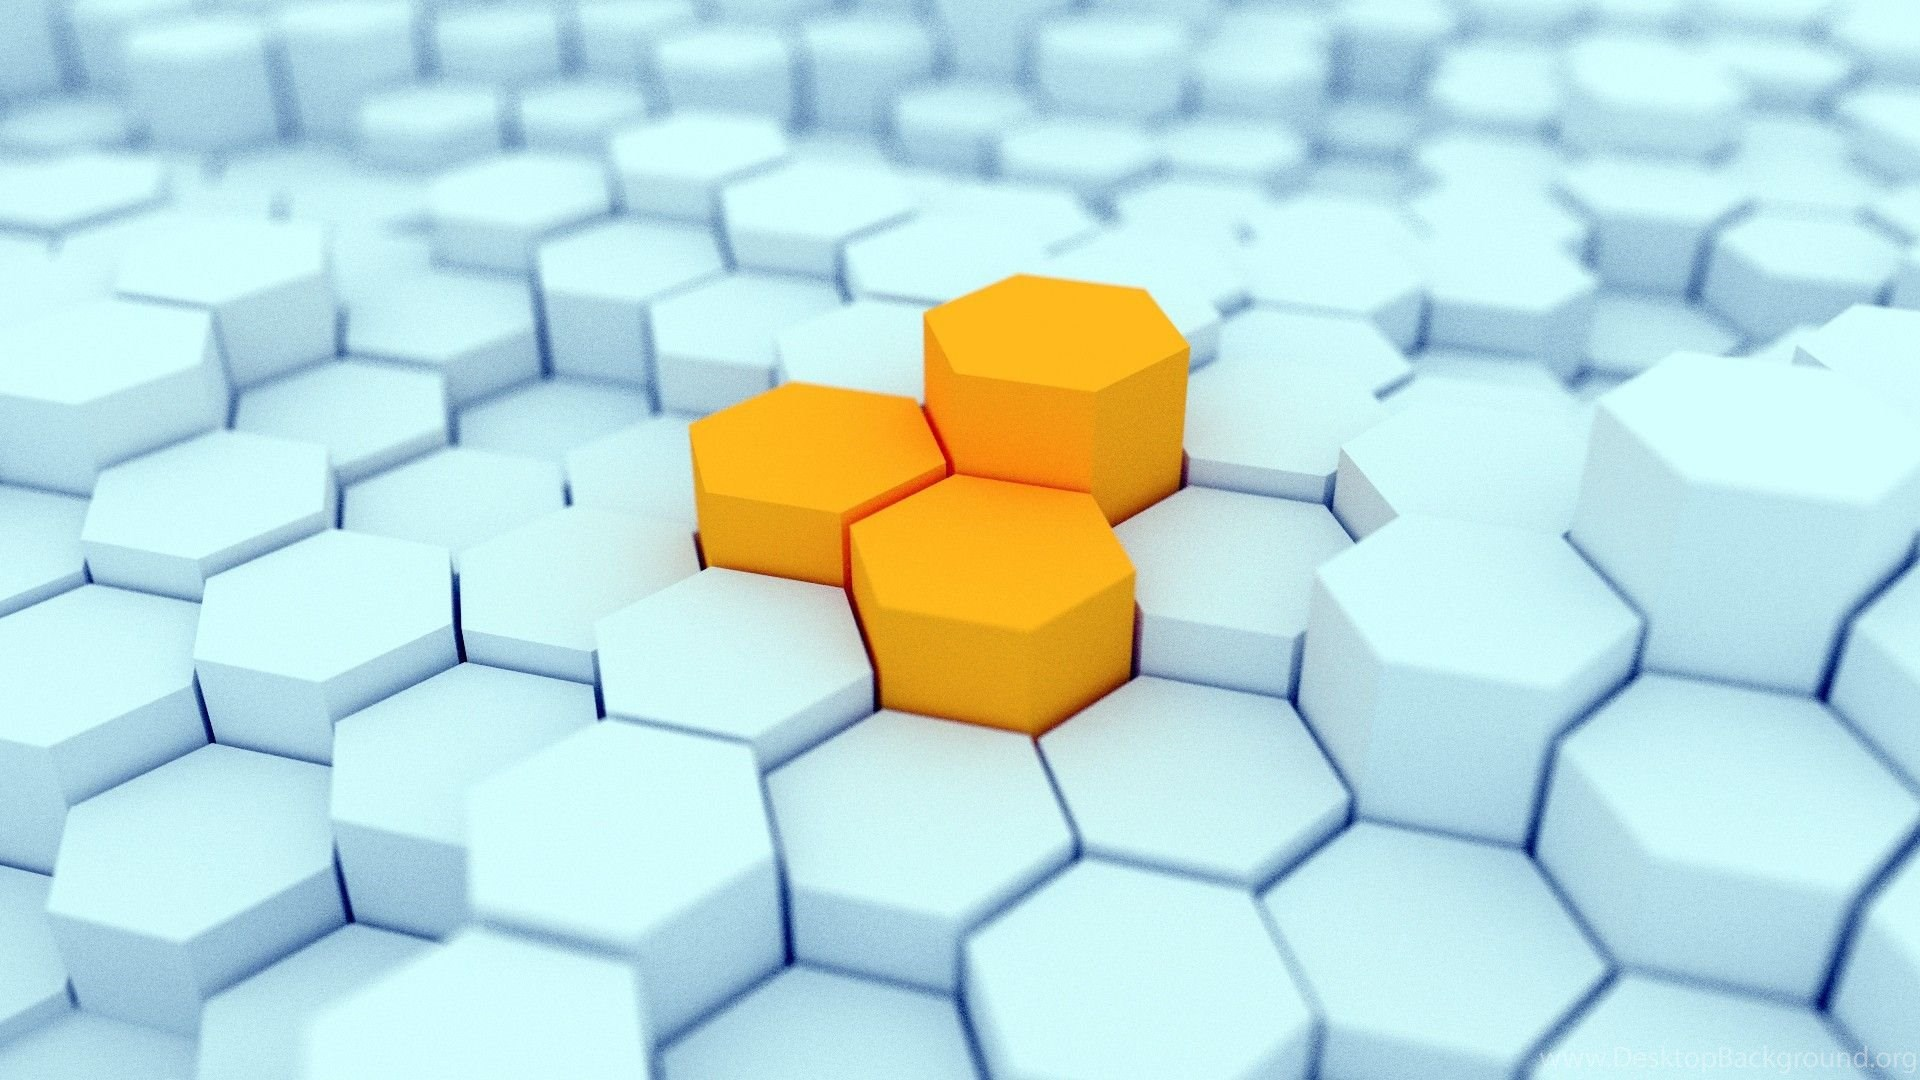 3D View, Minimalistic, Hexagons, Gold, Blender, Artwork, 3D